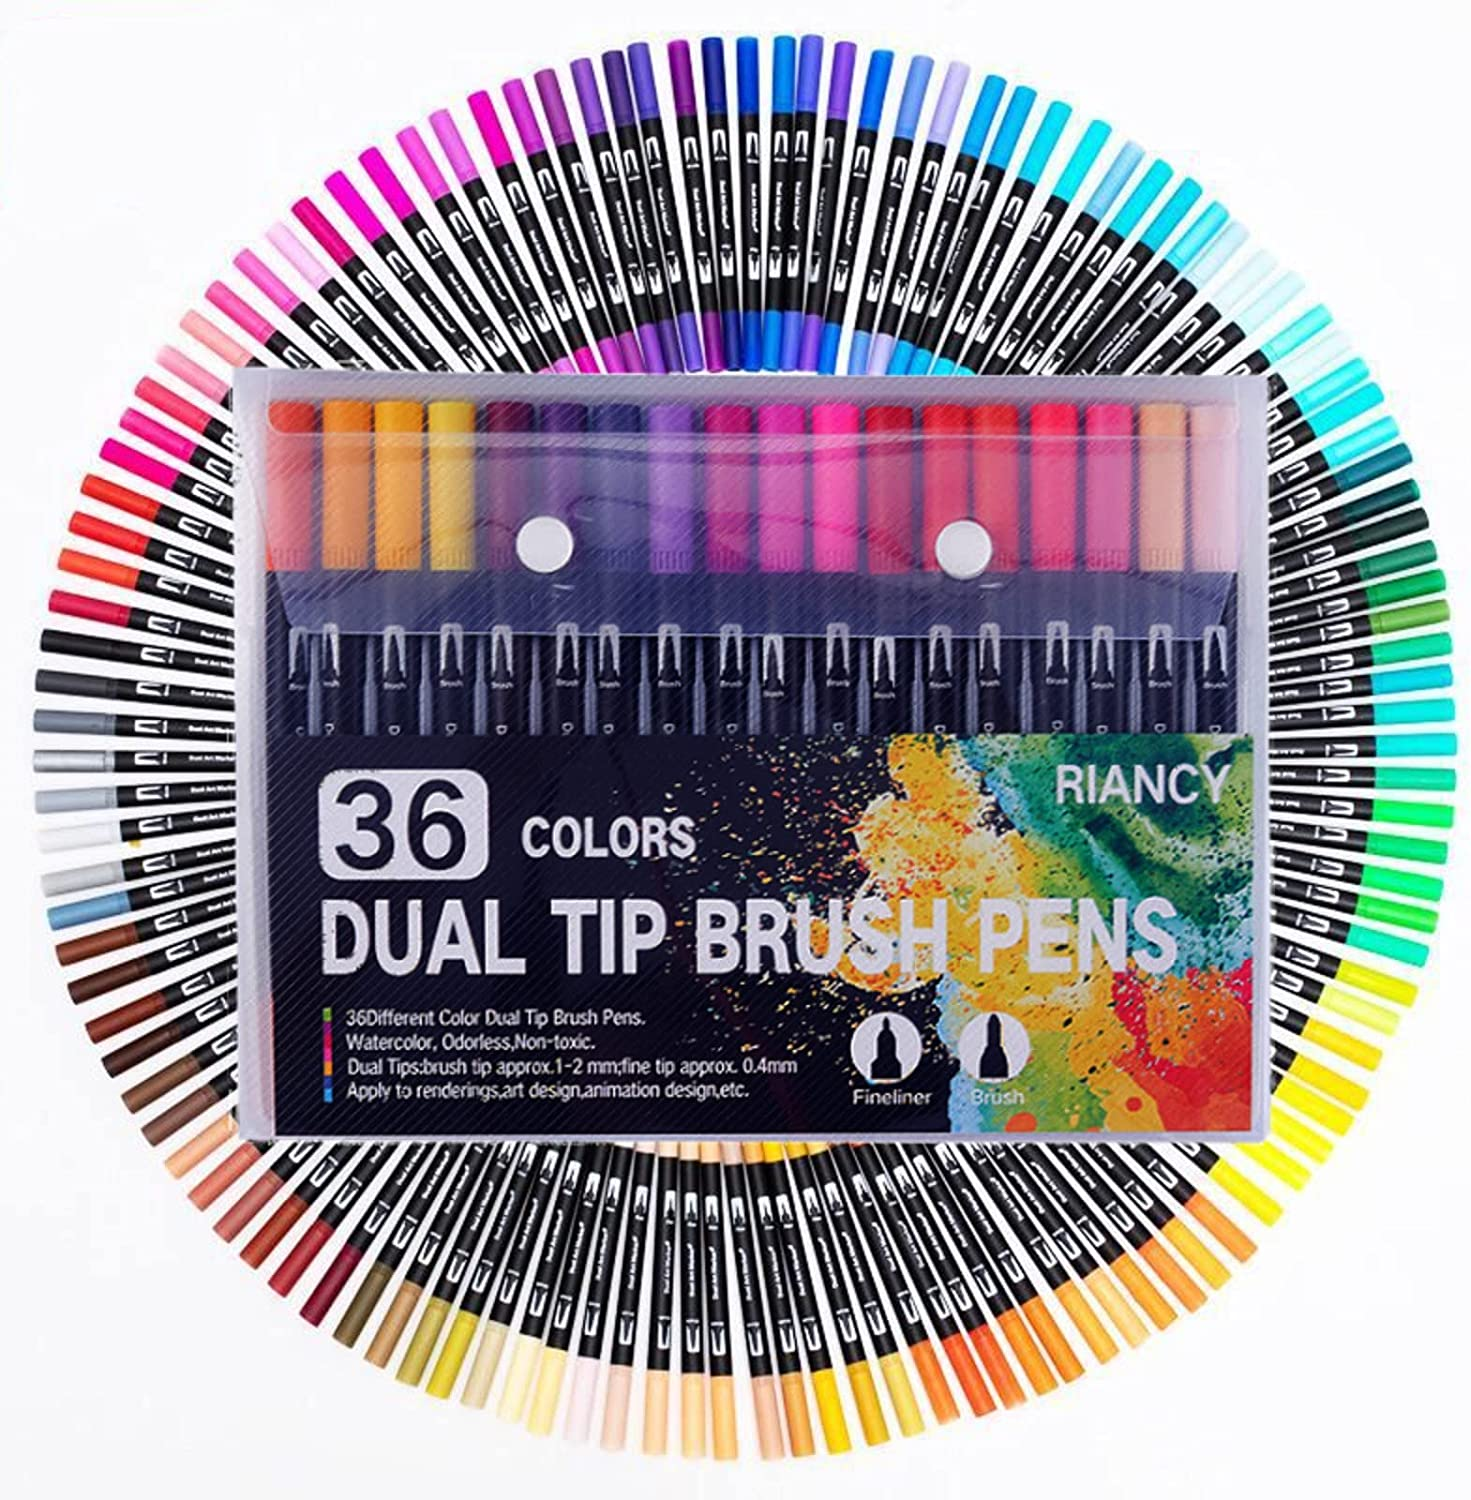 Dual Tip Las Vegas Mall Colored Pens Brush and Double Long Beach Mall Head En Markers Fine